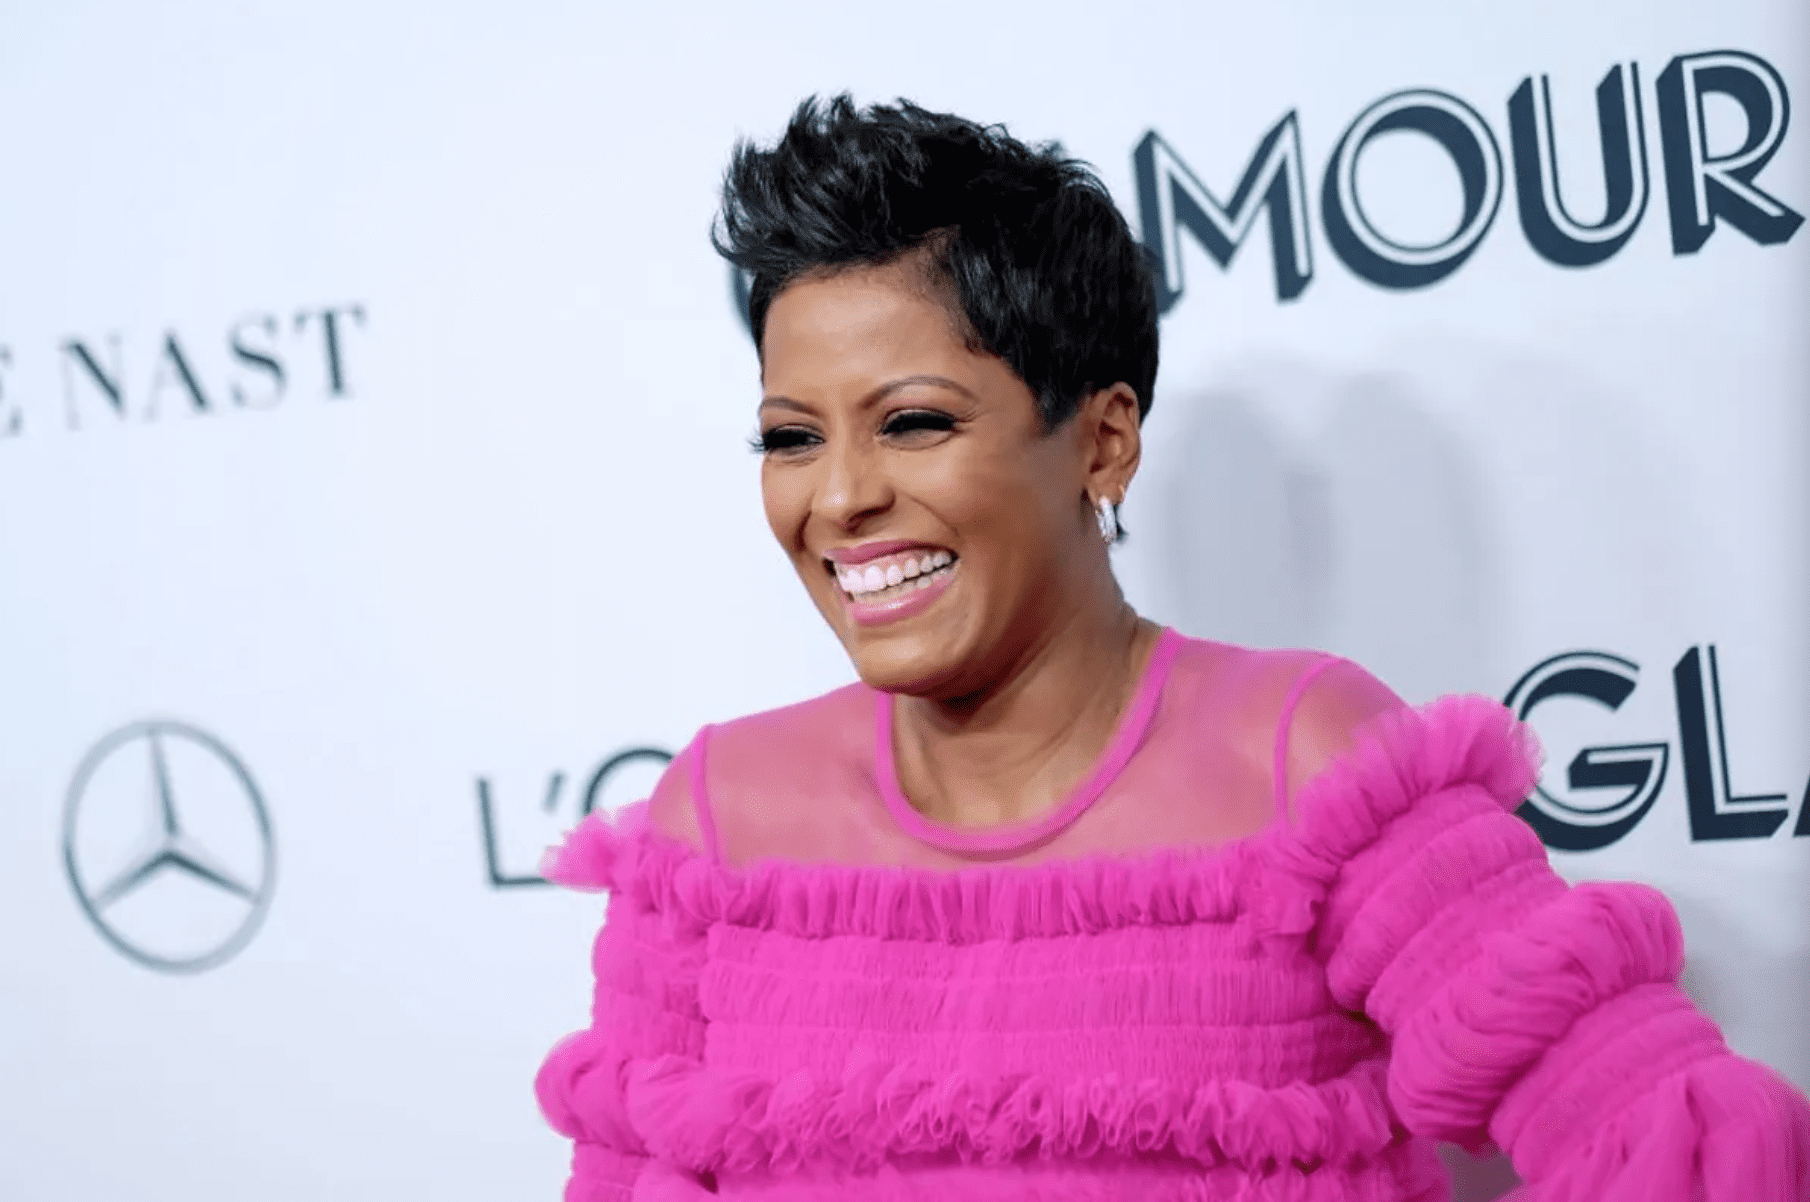 Tamron Hall attends the 2019 Glamour Women of the Year Awards at Alice Tully Hall on November 11, 2019. | Source: Getty Images